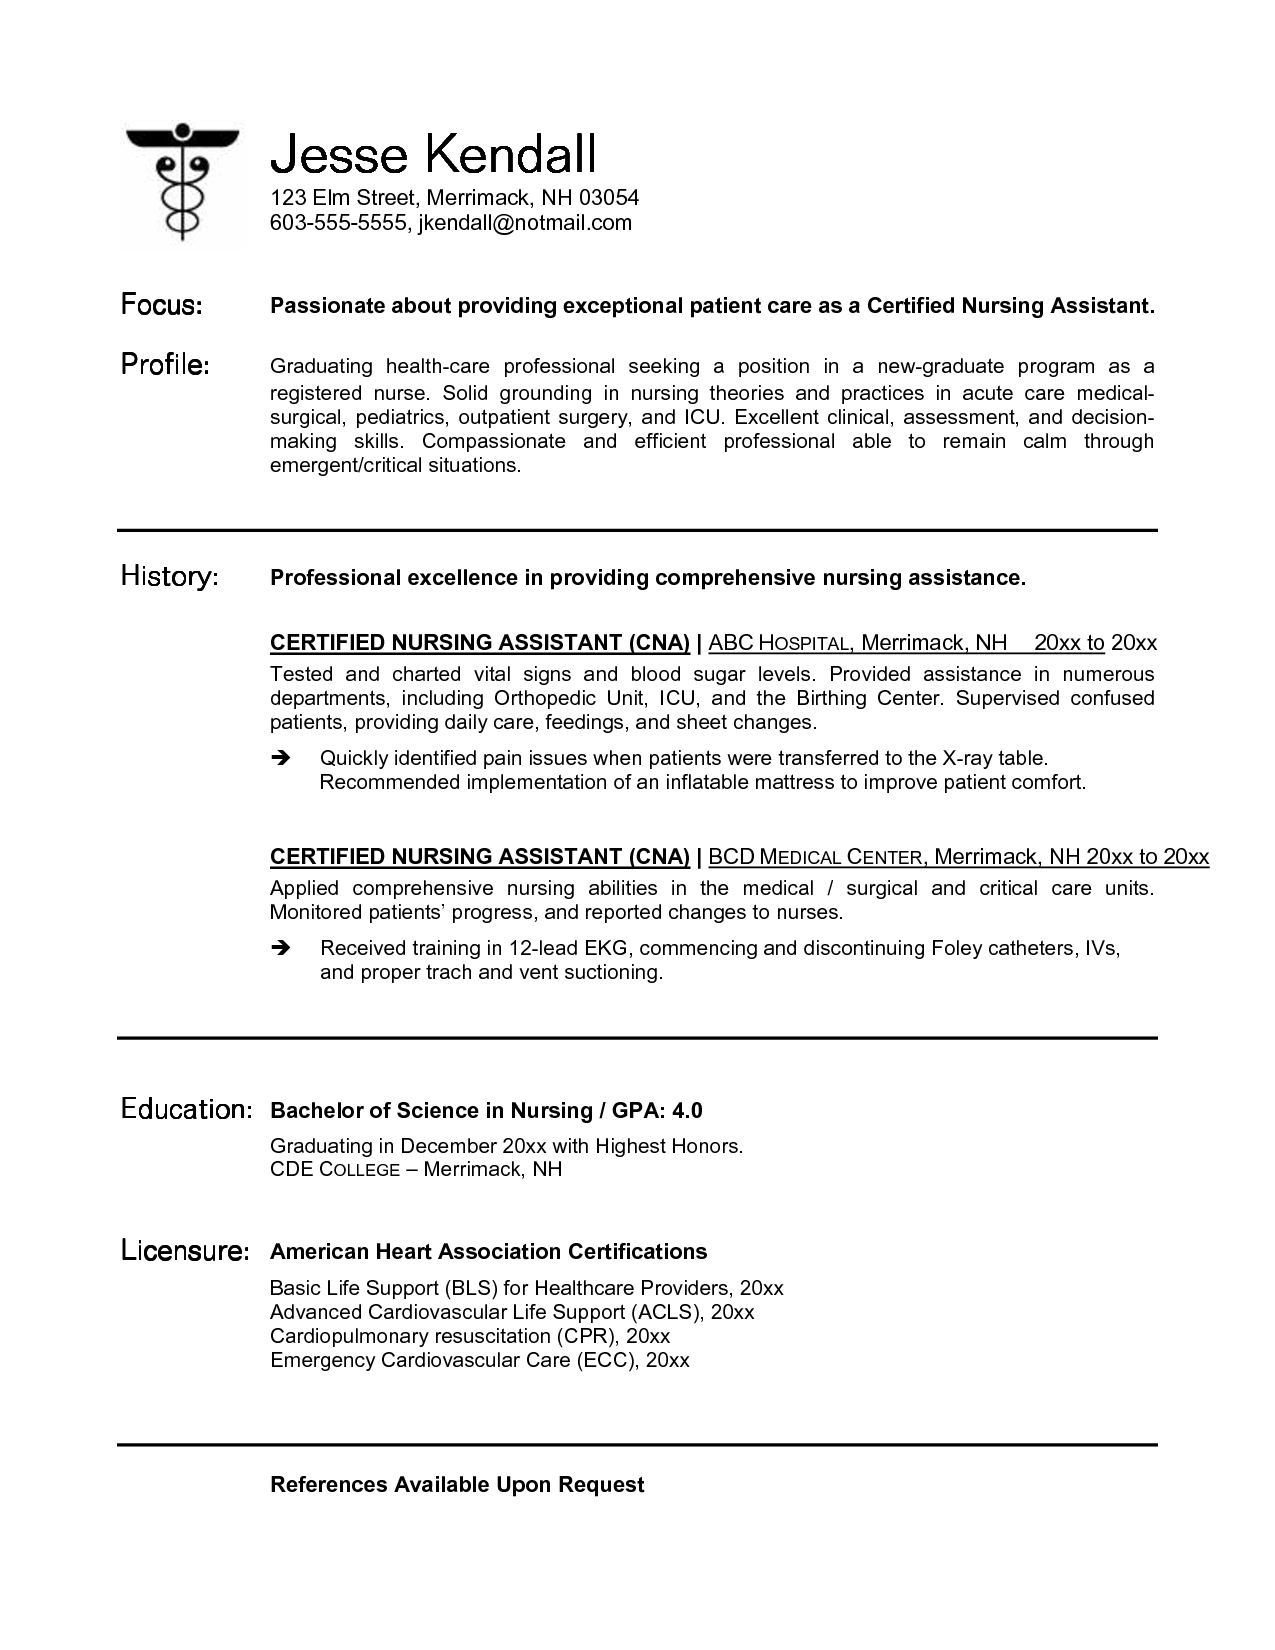 Resume For Cna Job Sample Format Simple Cover Letter With